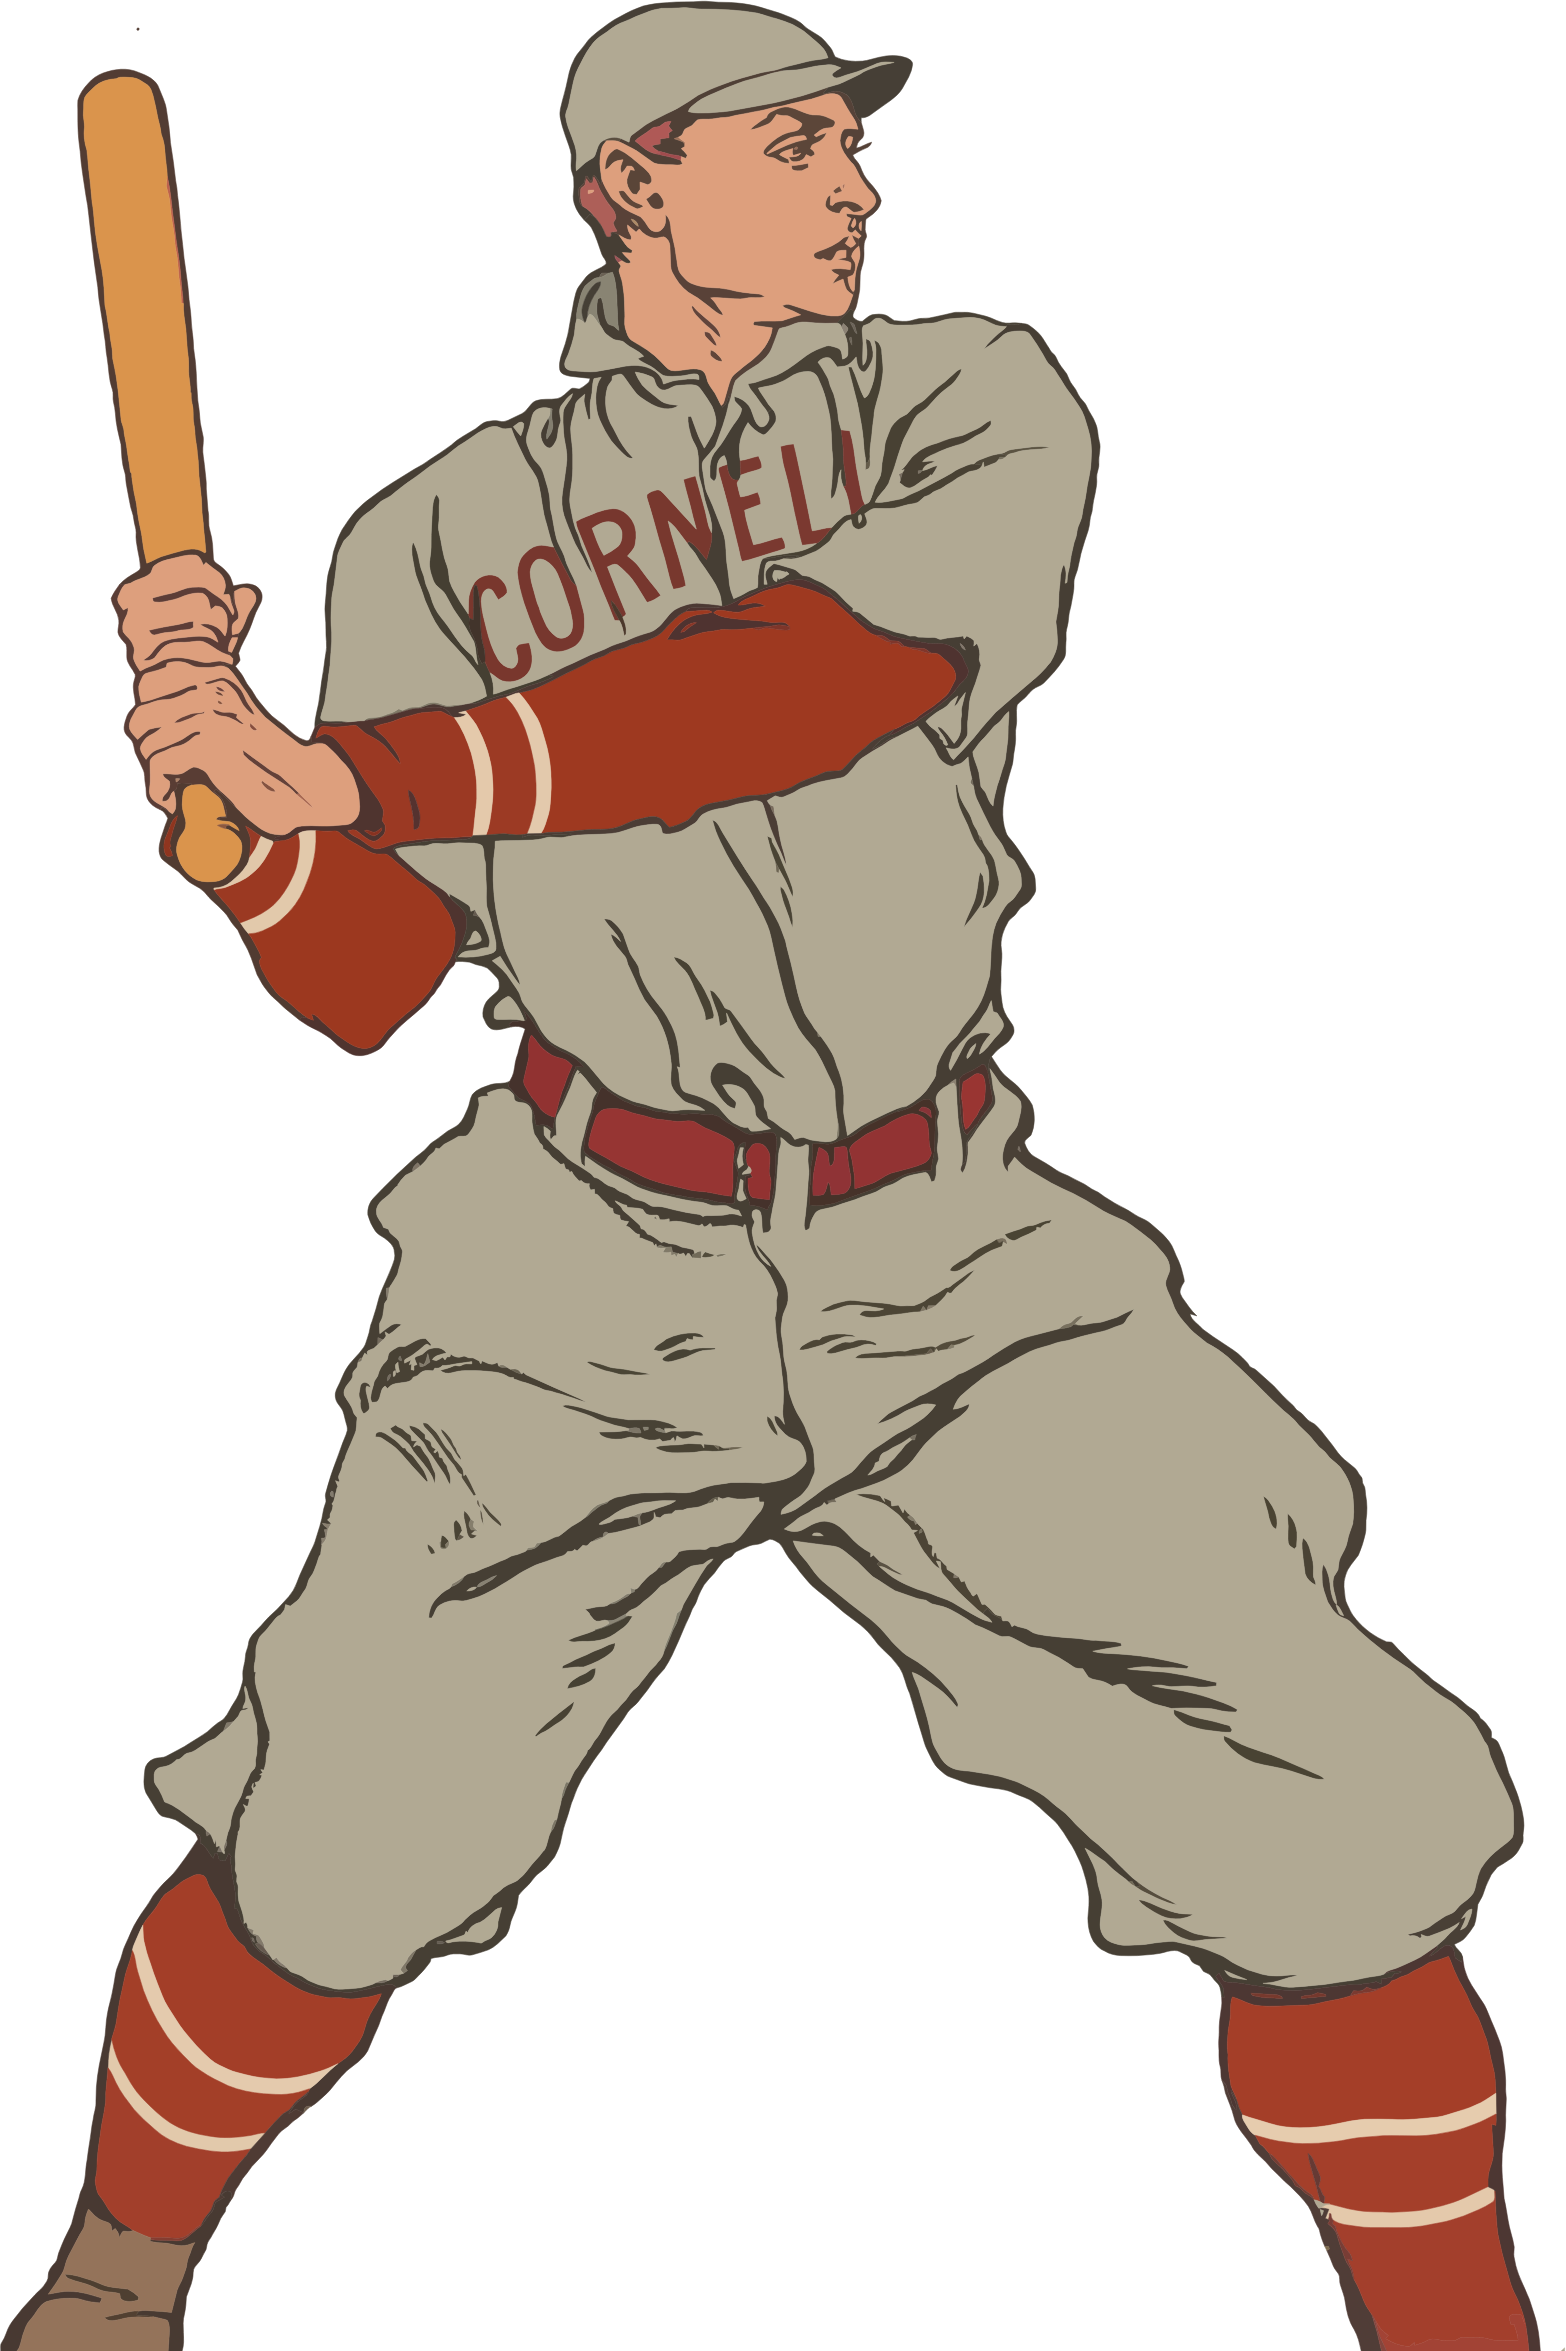 Old baseball clipart banner royalty free download Clipart - Vintage Baseball Player banner royalty free download